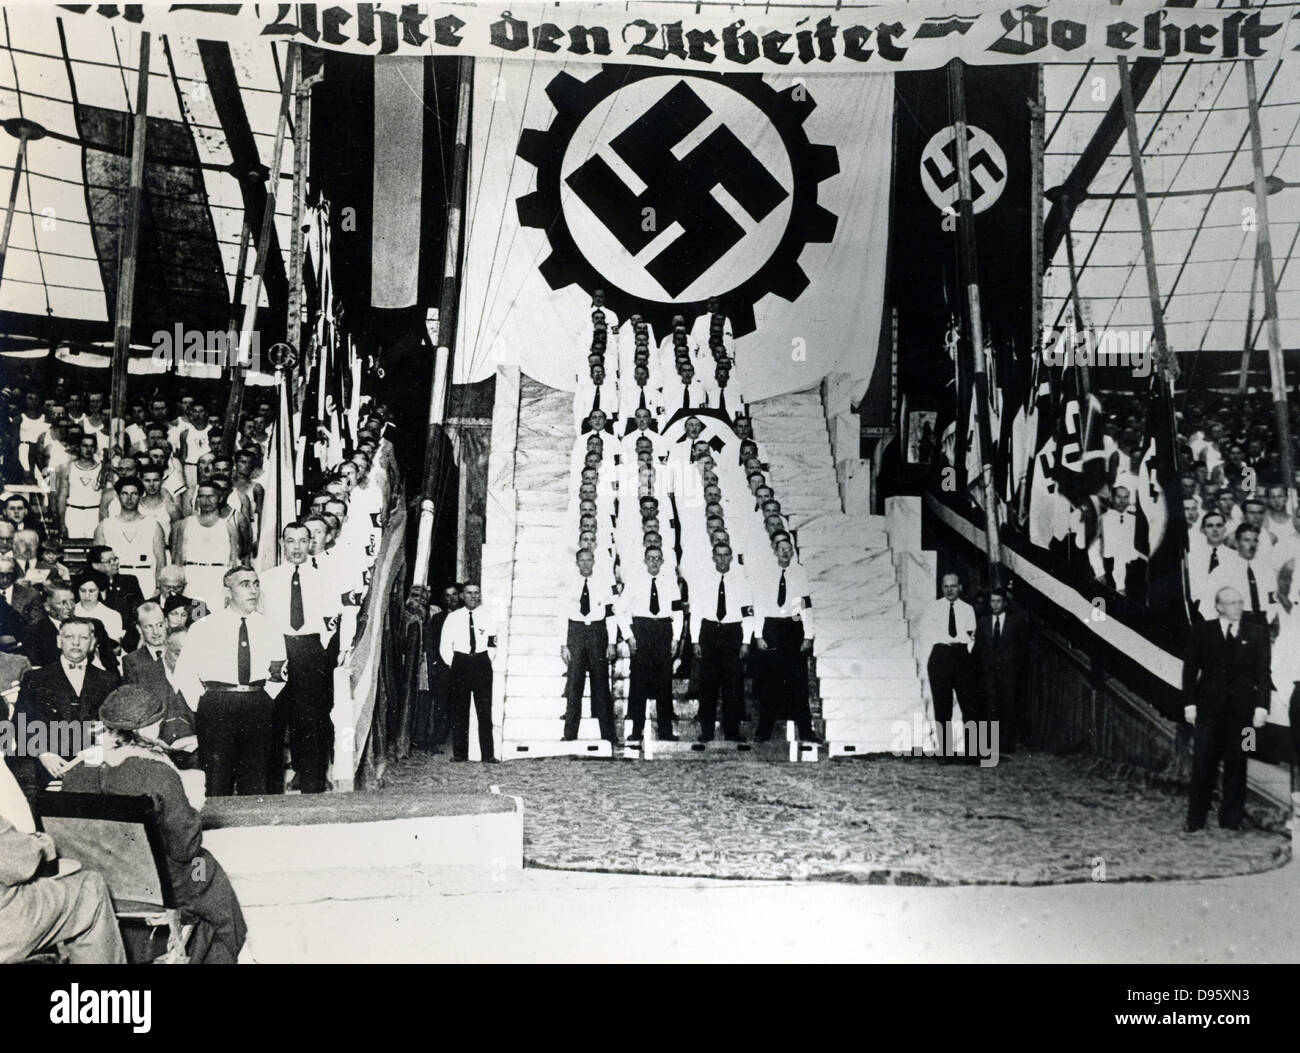 Nazi rally in the USA, 1930s. - Stock Image